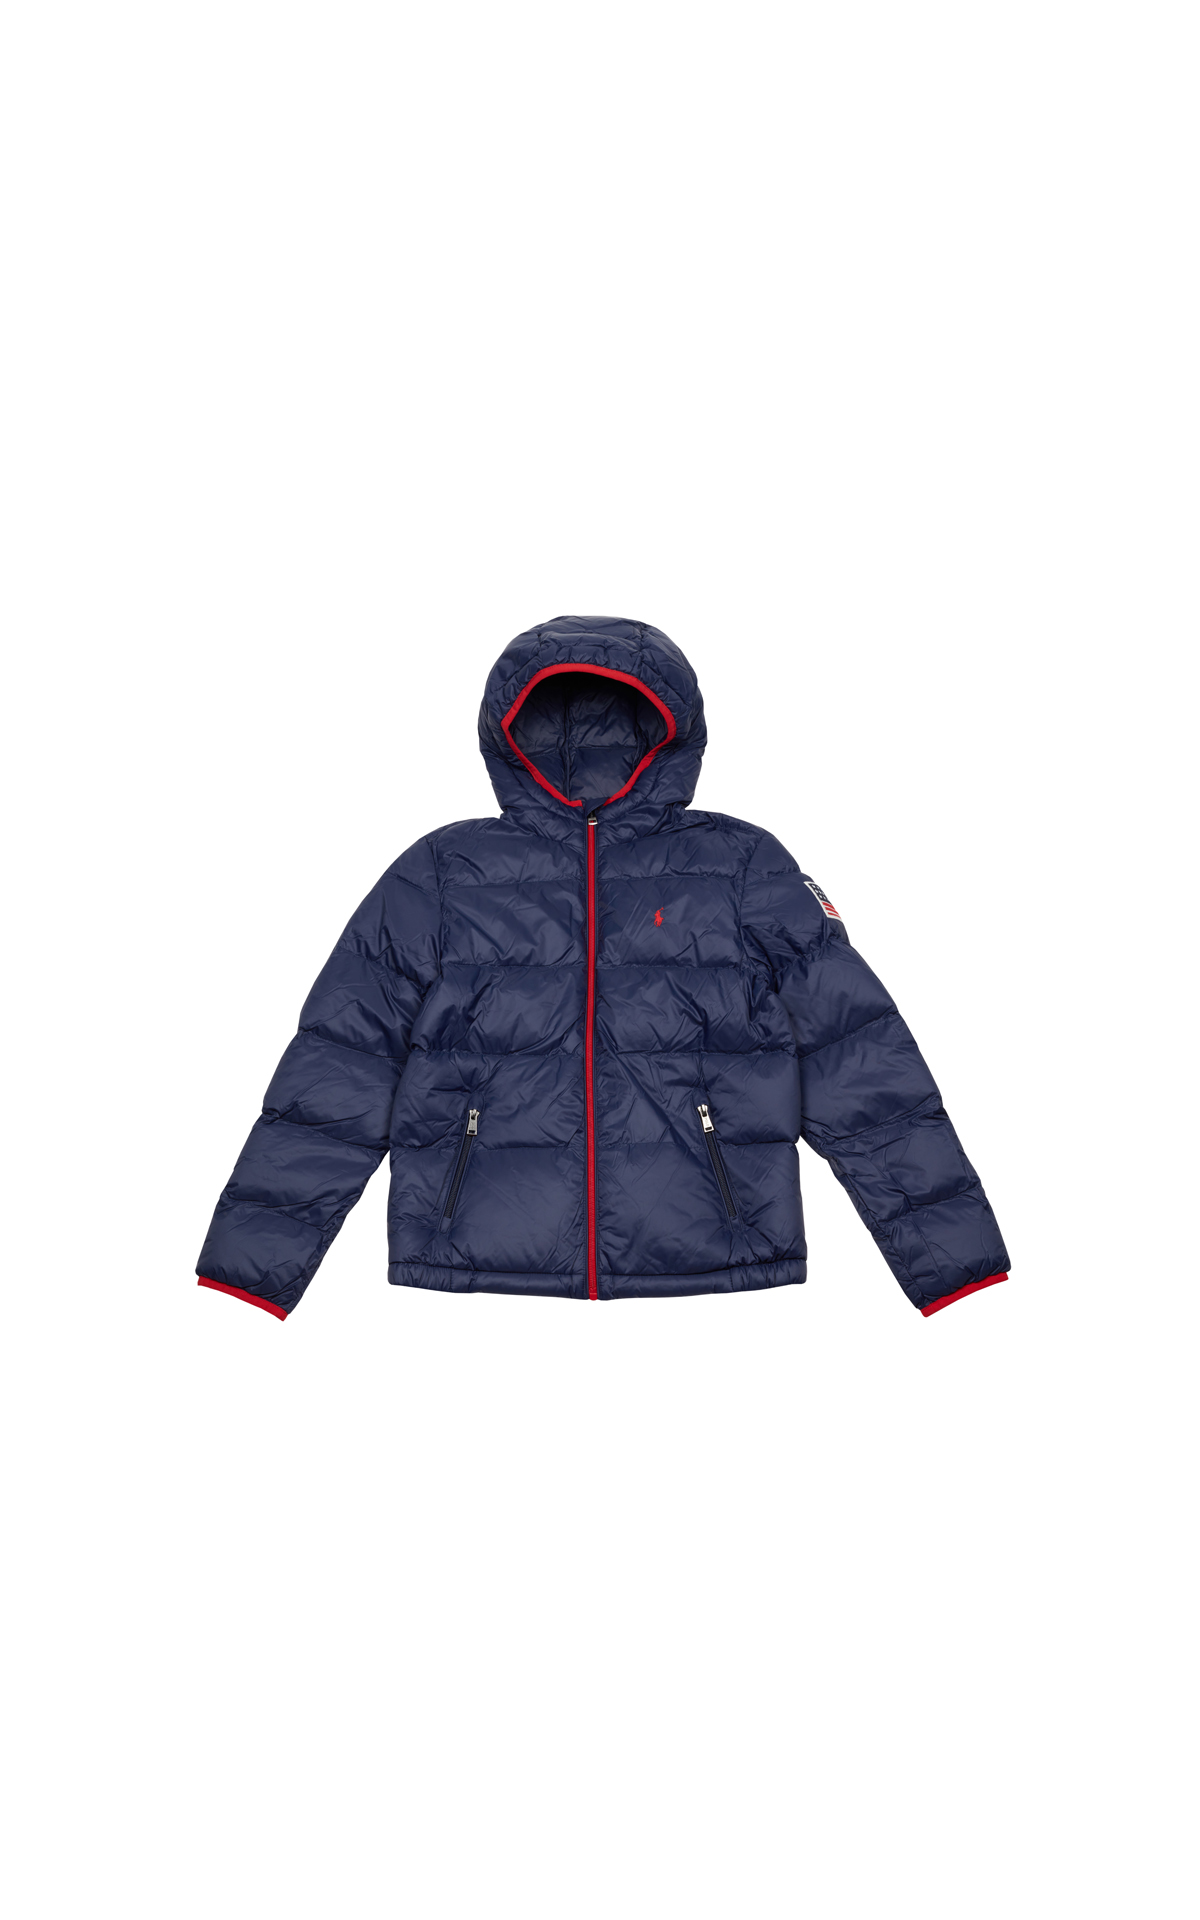 Polo Ralph Lauren Children's Lightweight Pocket Down Jacket at The Bicester Village Shopping Collection